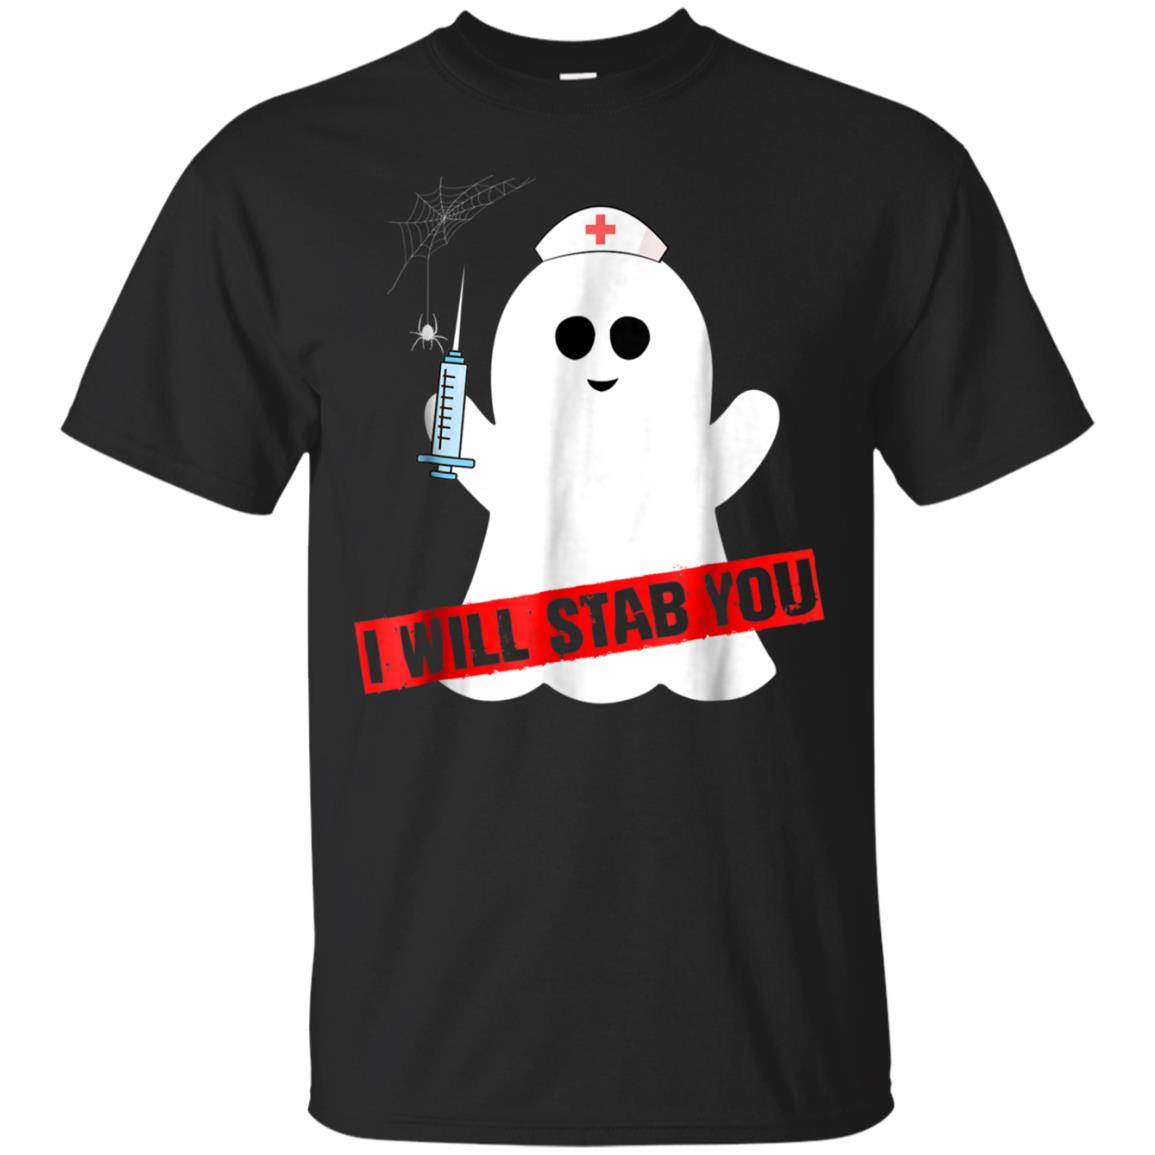 I will stab you shirt nurse ghost Halloween costume 99promocode